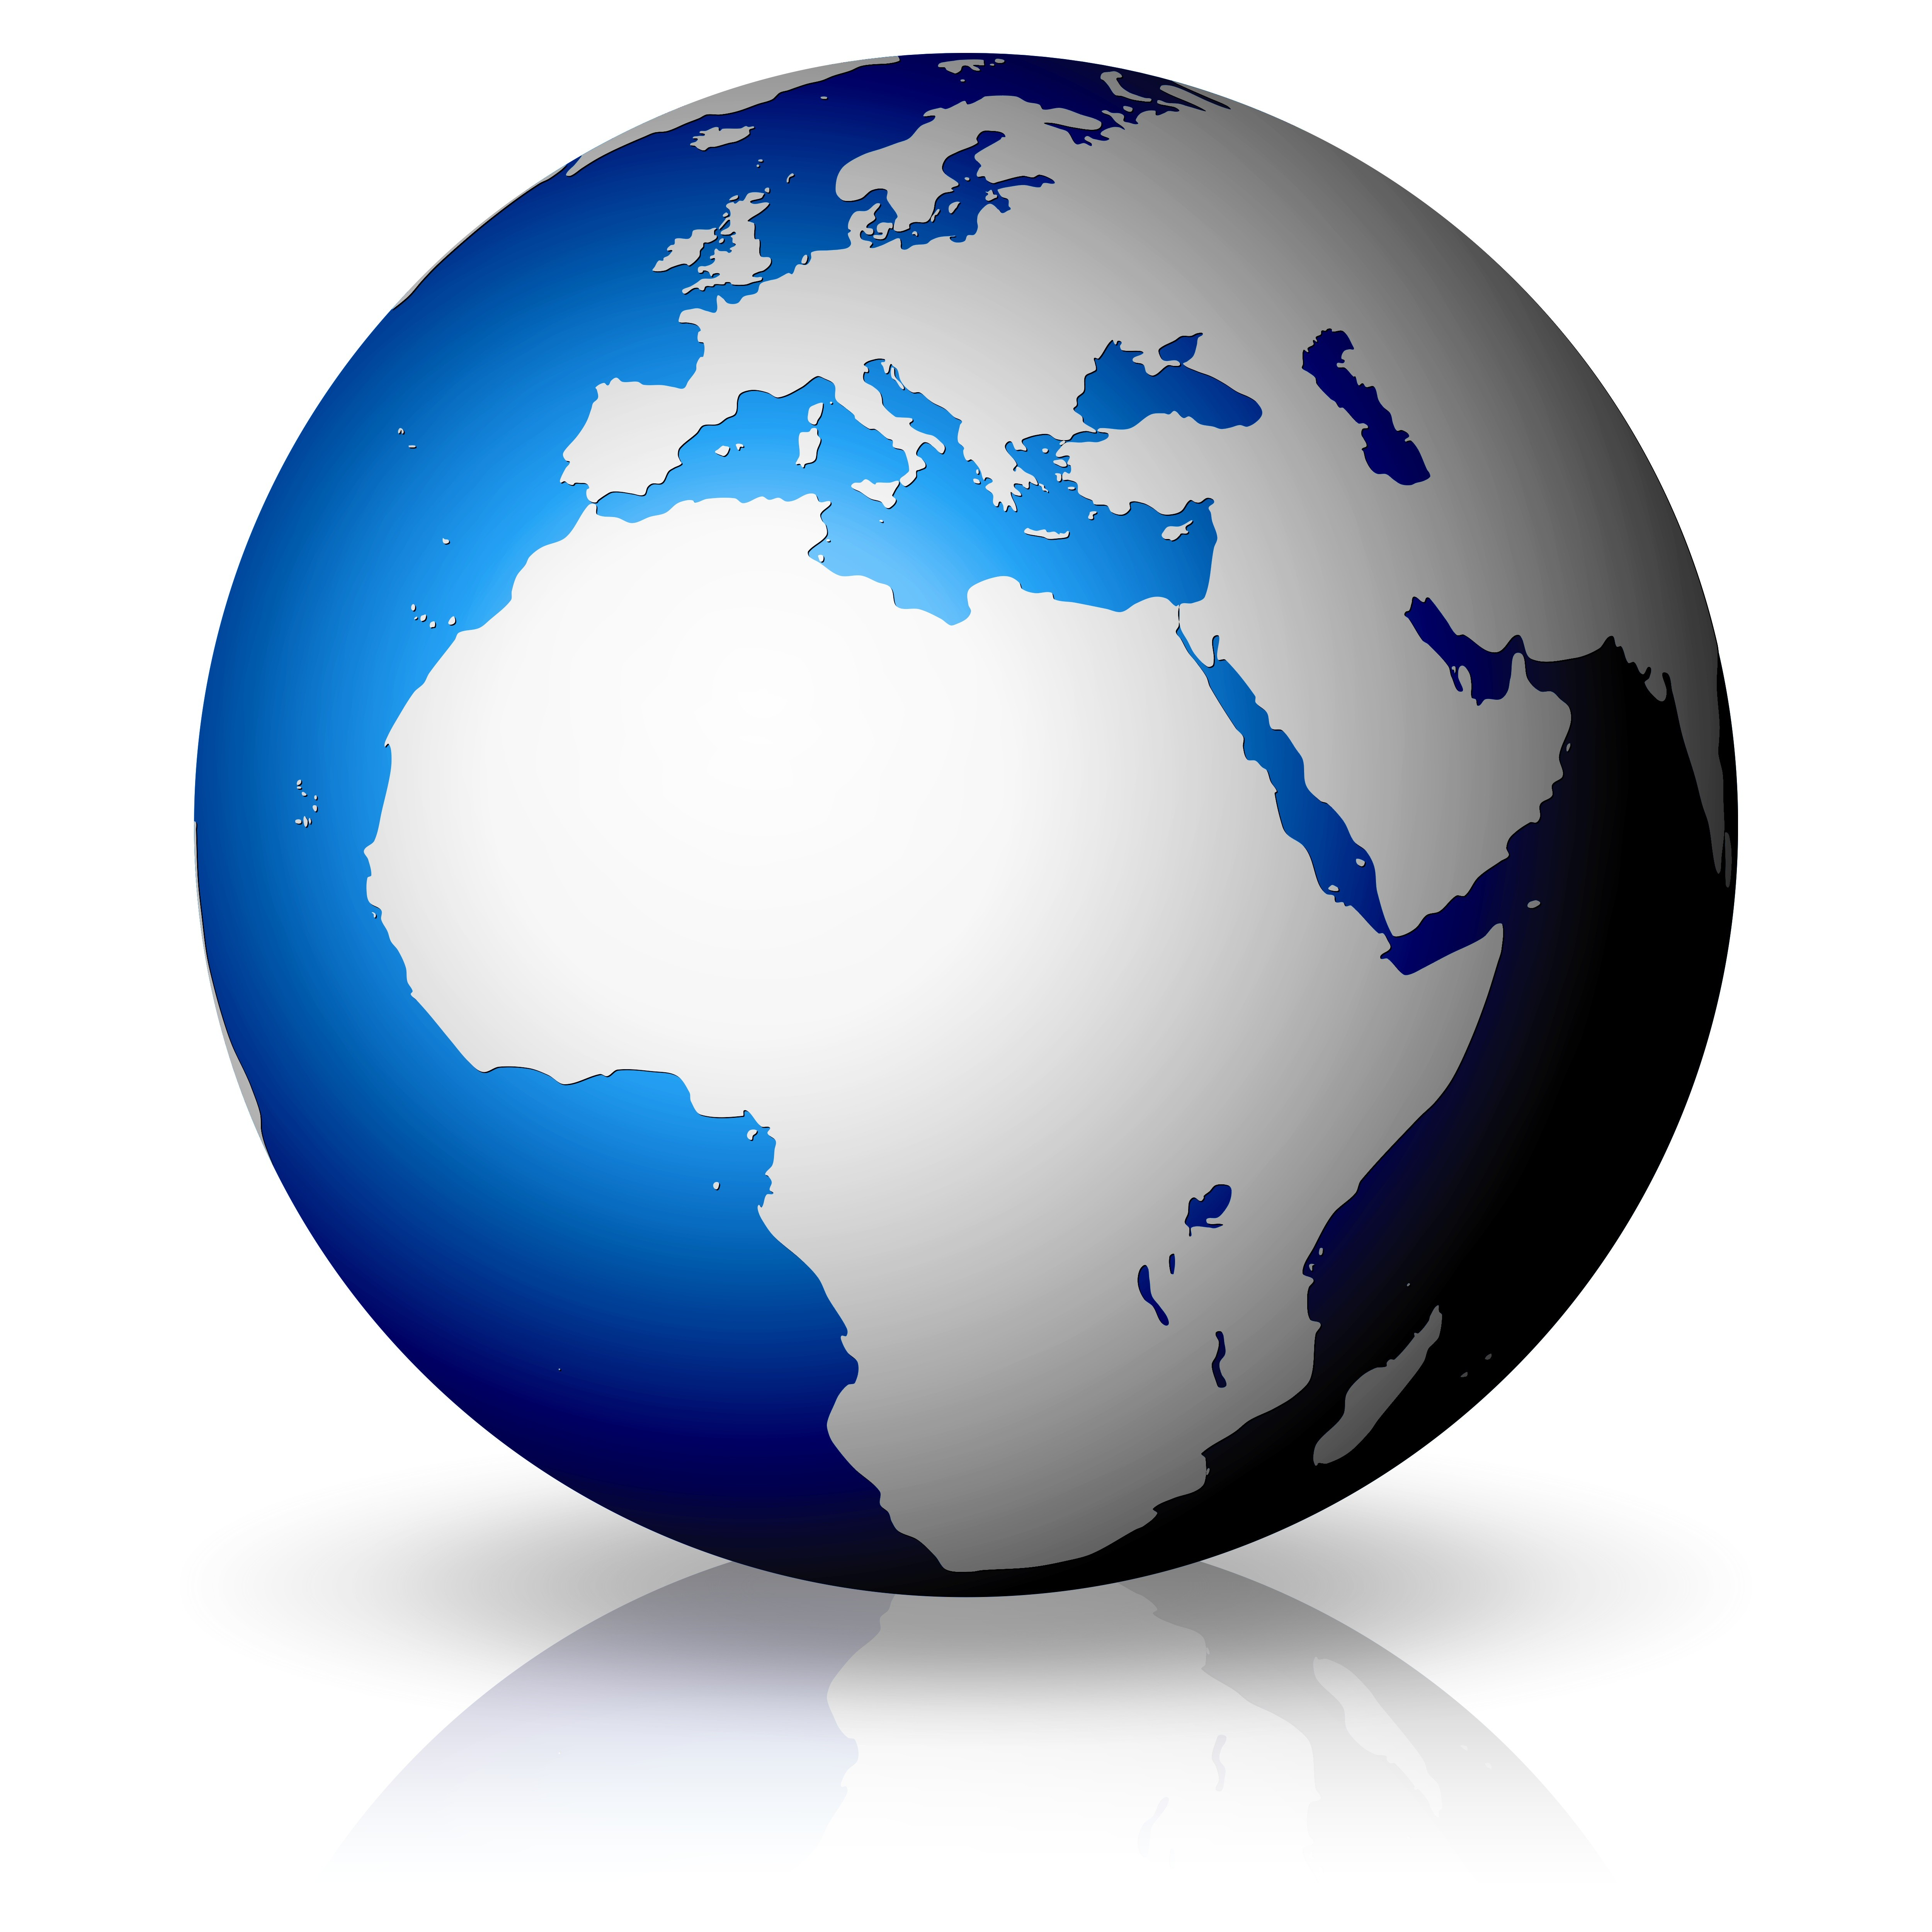 World clipart globe africa. Map showing fresh earth